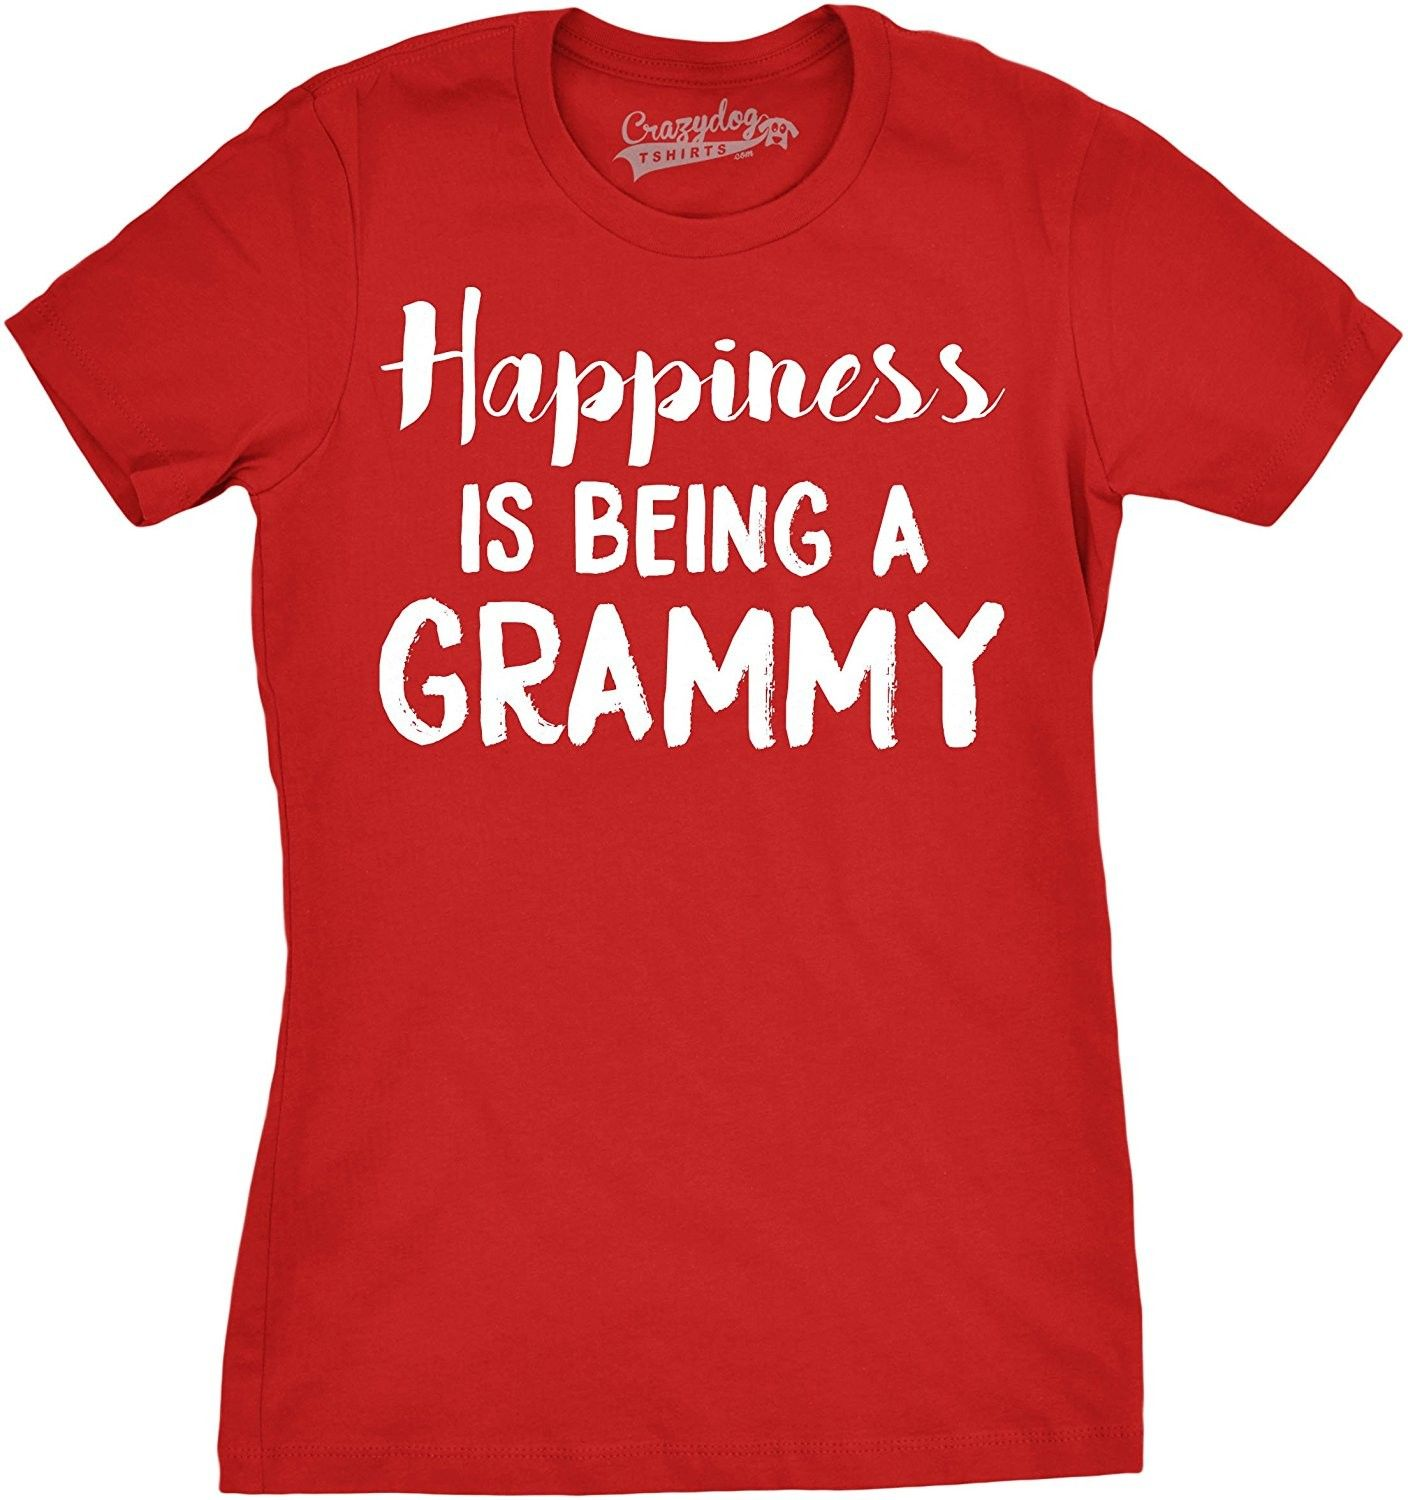 Crazy Dog T-Shirts Womens Happiness is Being a Grammy Funny Grandmother Tee for Grandma